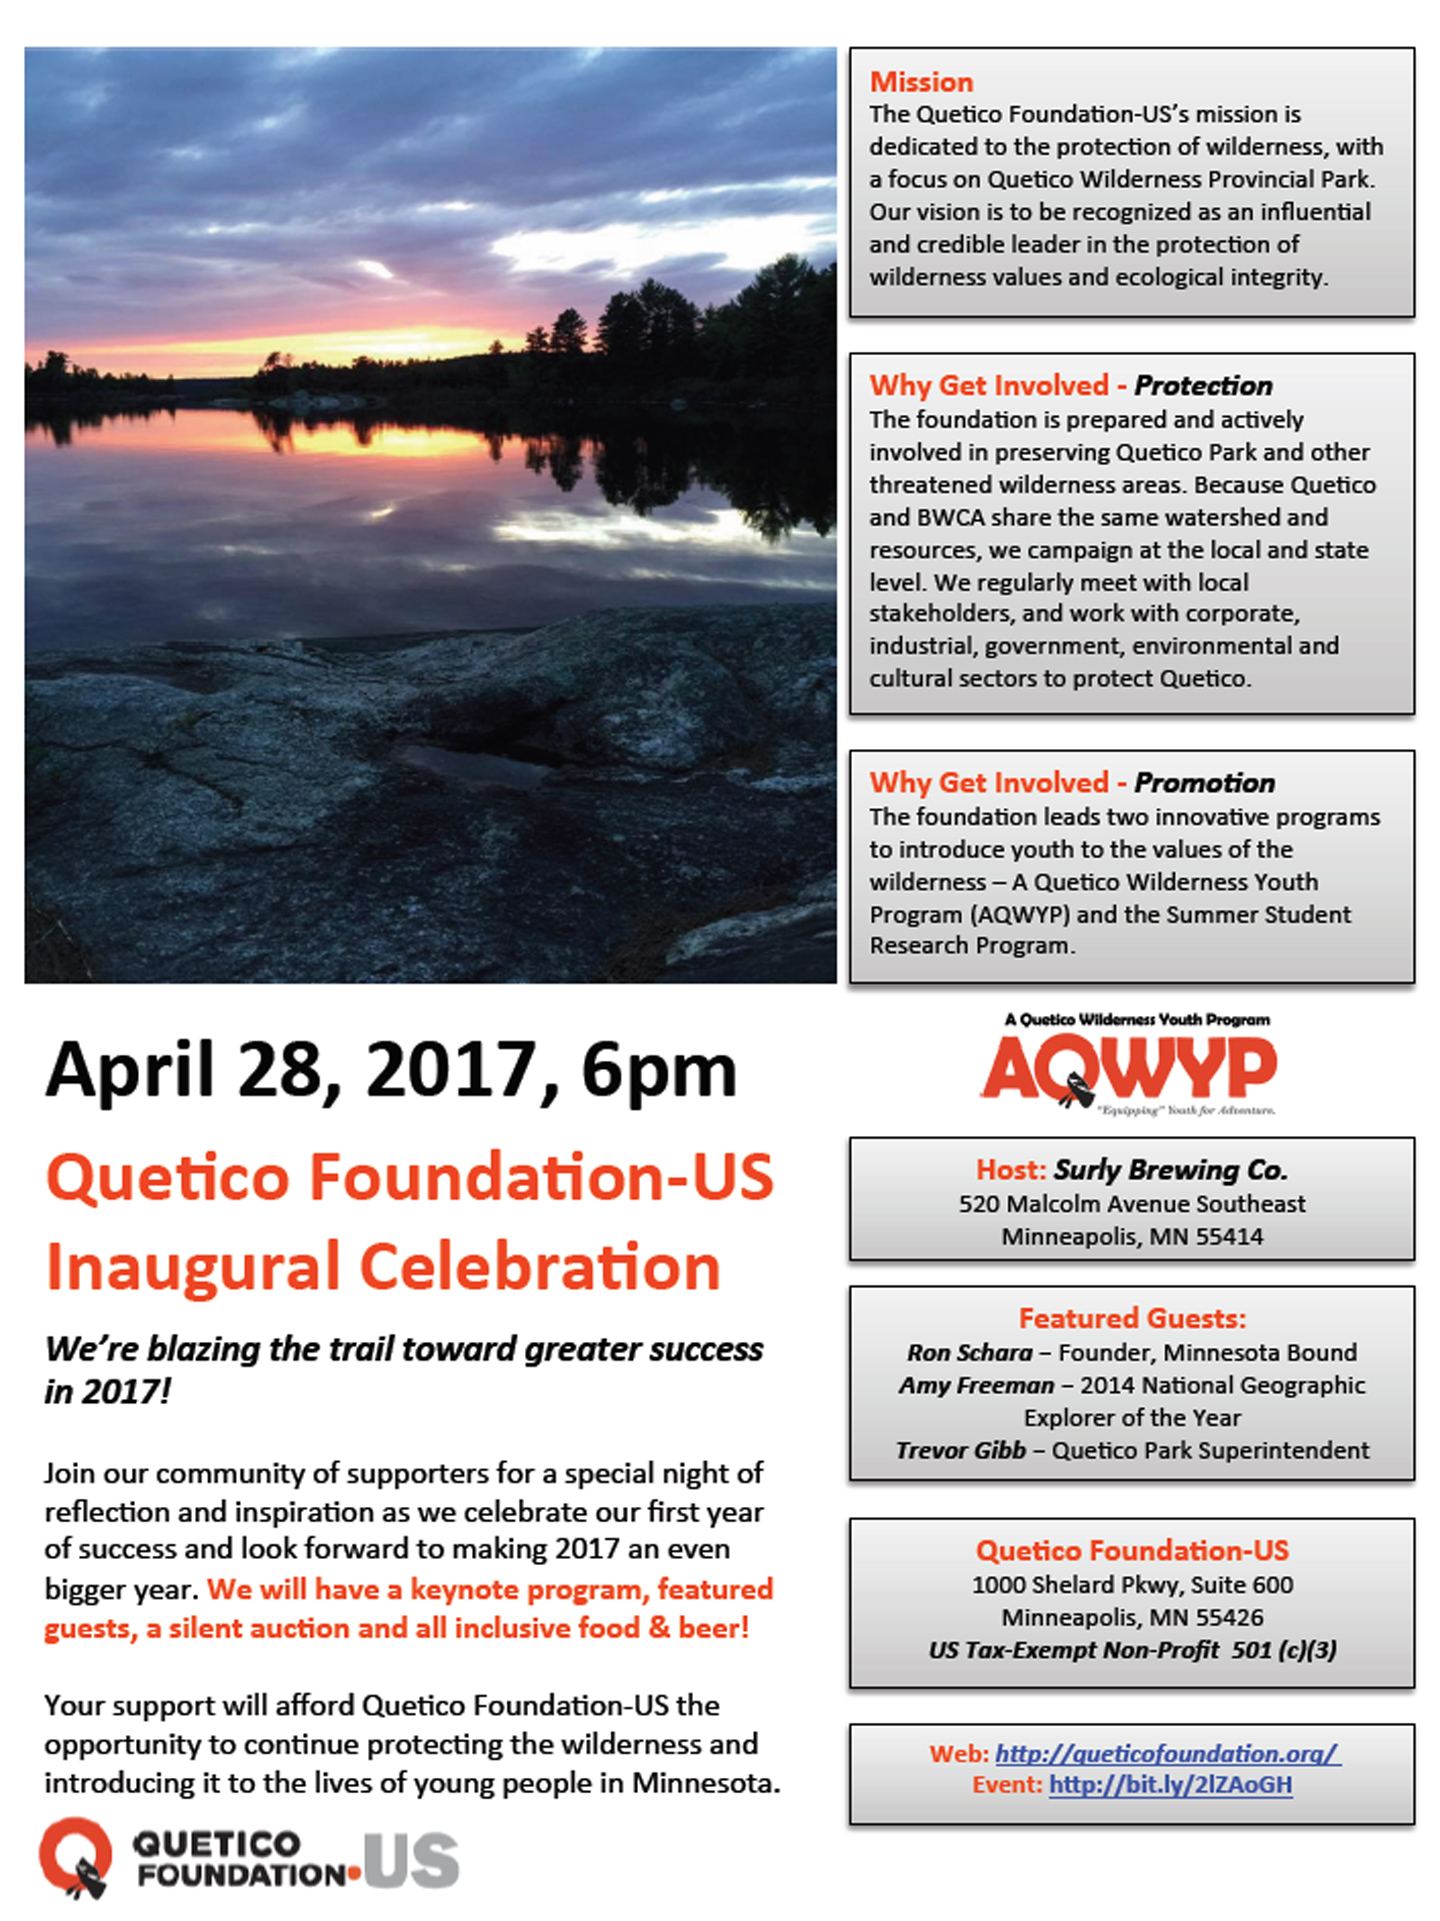 QueticoFoundation-US - Surly Event Flyer - 2017_1